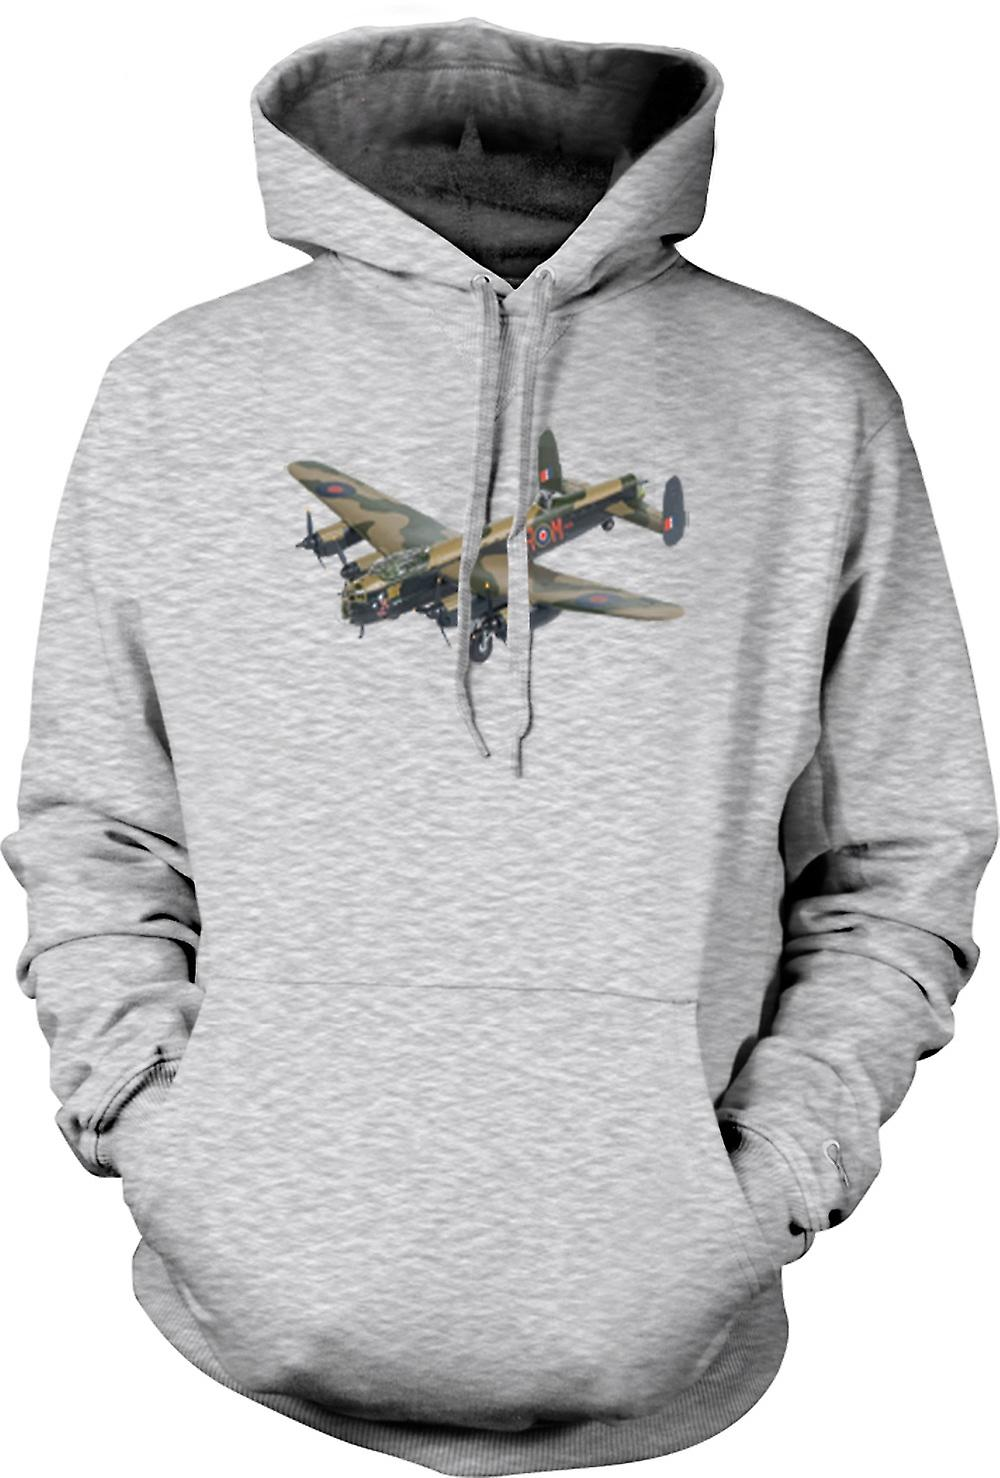 Mens Hoodie - Fighter plan bombplan kamouflage